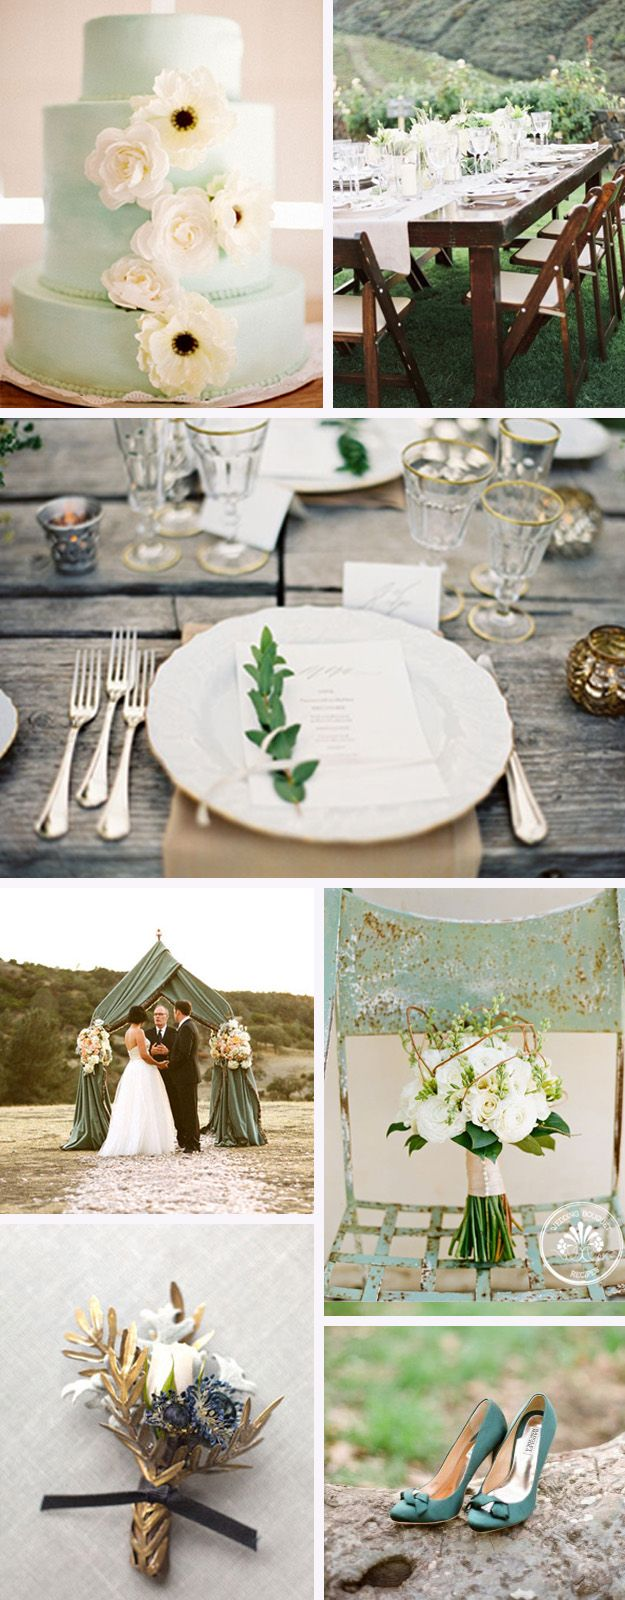 Rustic and Mint Green Wedding Decor | event details & design ...